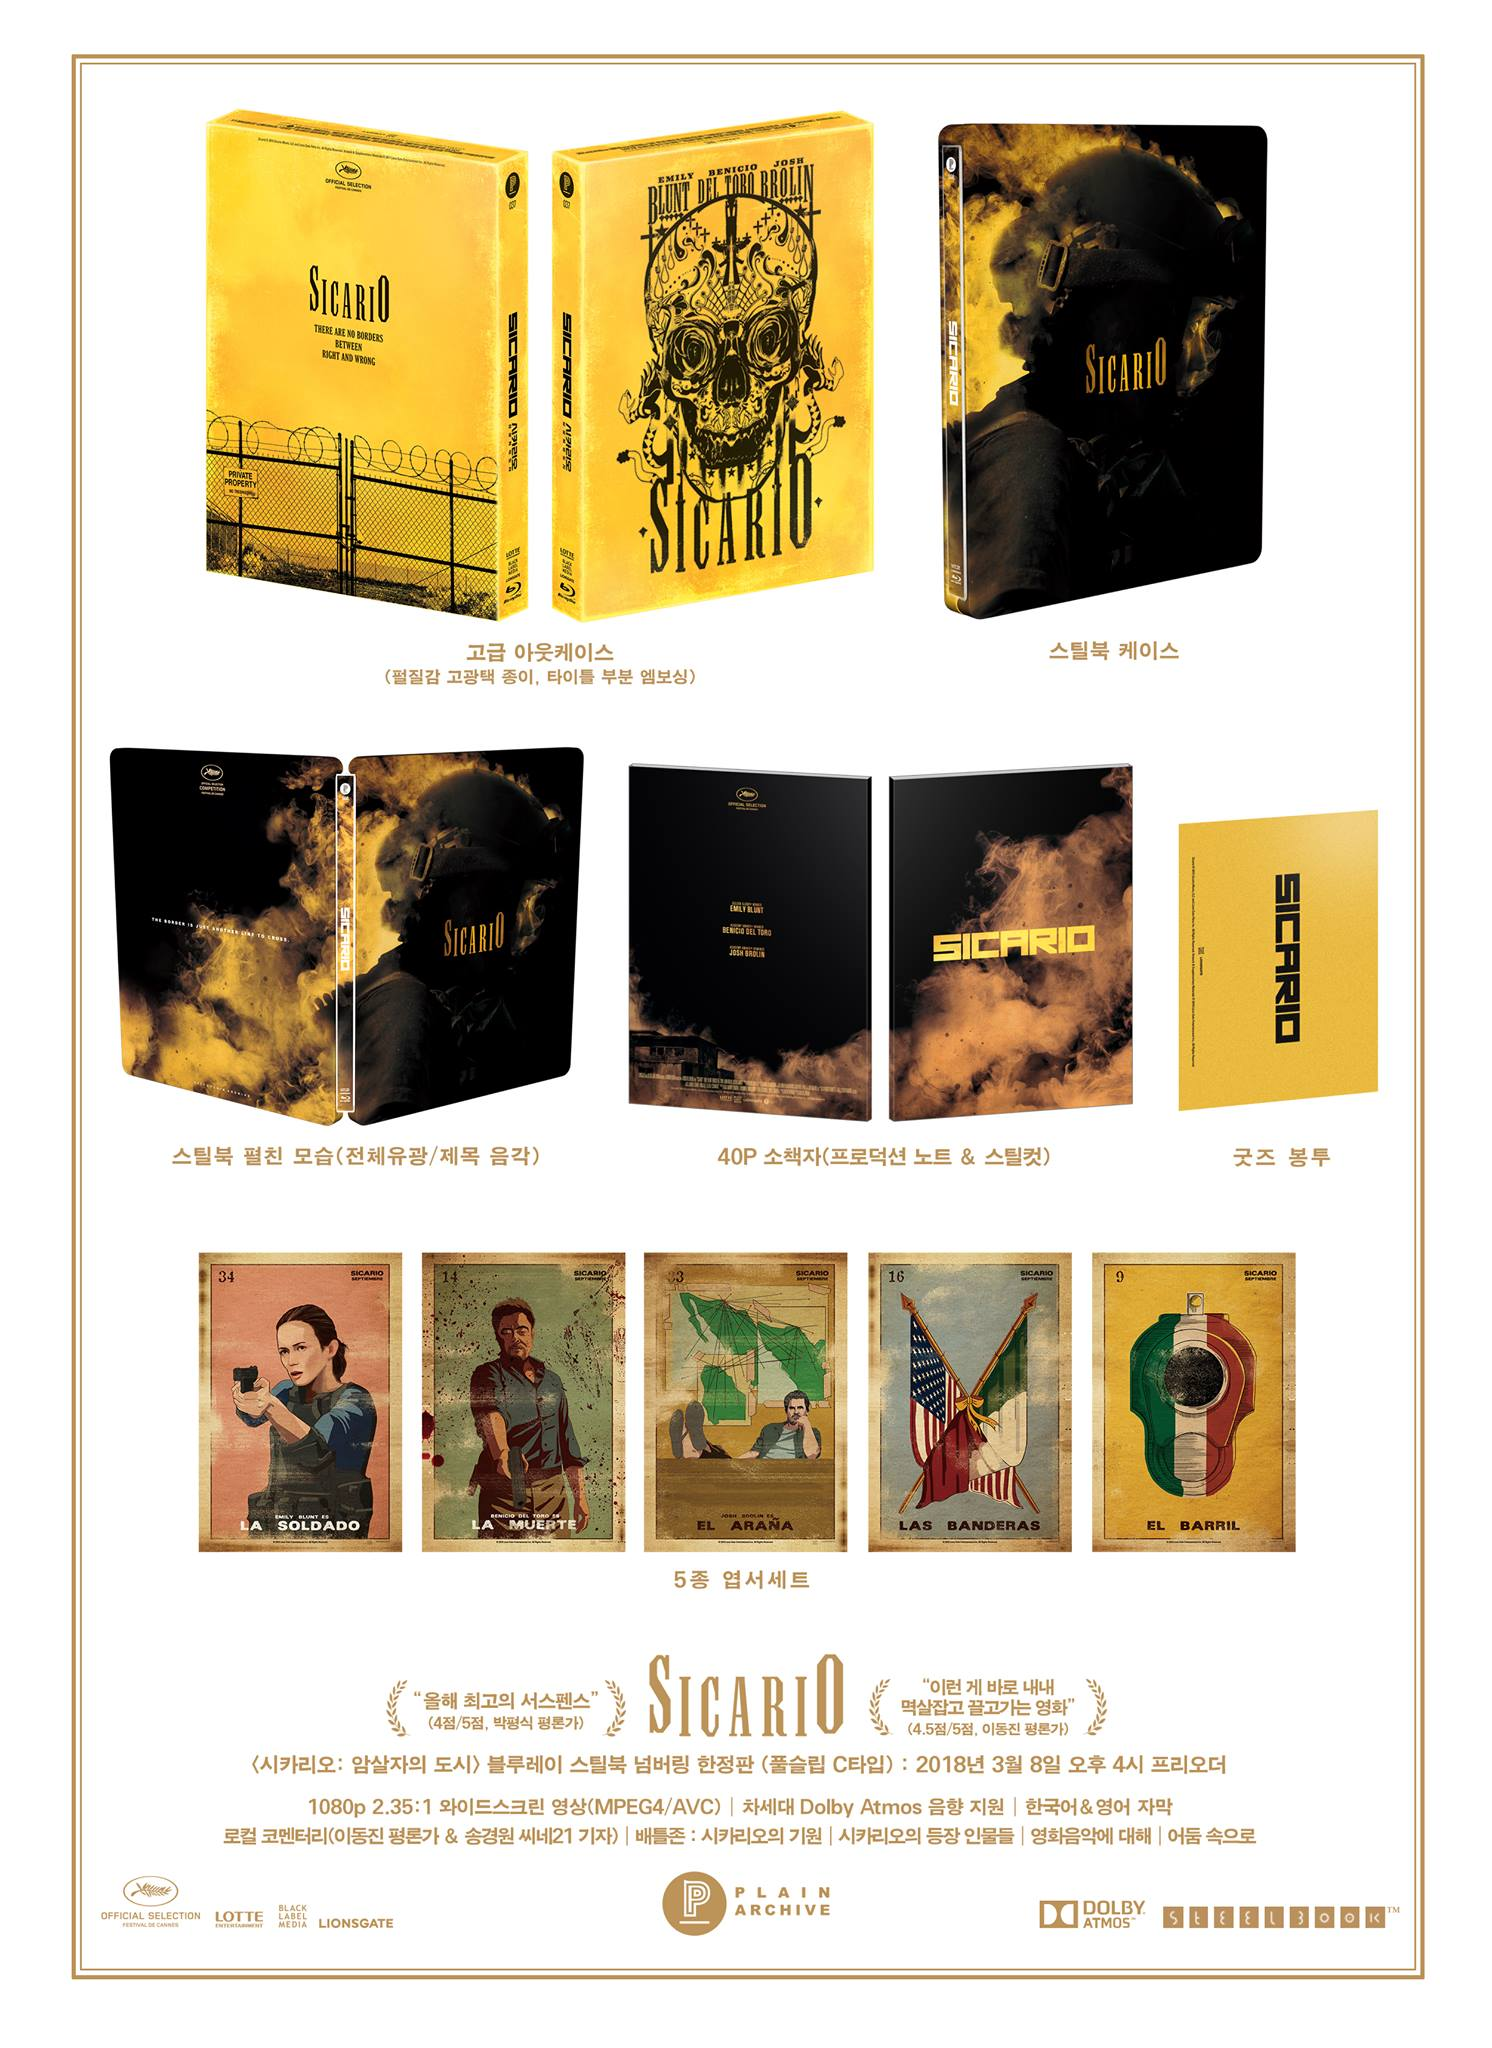 Sicario steelbook plain archive 3